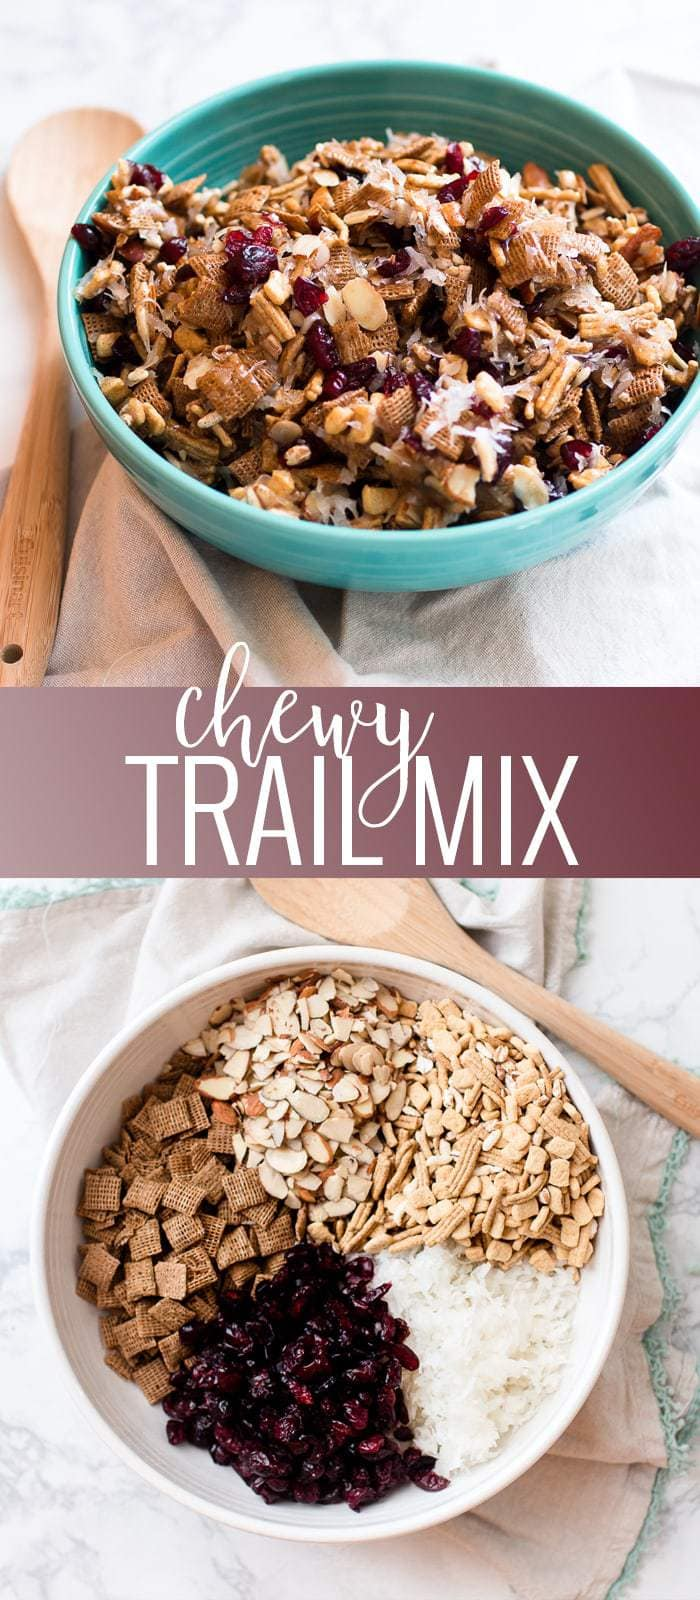 Chewy Trail Mix | homemade trail mix recipe | healthy snack recipes | how to make trail mix | trail mix recipe ideas | easy snack recipes | easy trail mix recipe || Oh So Delicioso #trailmixrecipe #easysnack #healthysnack